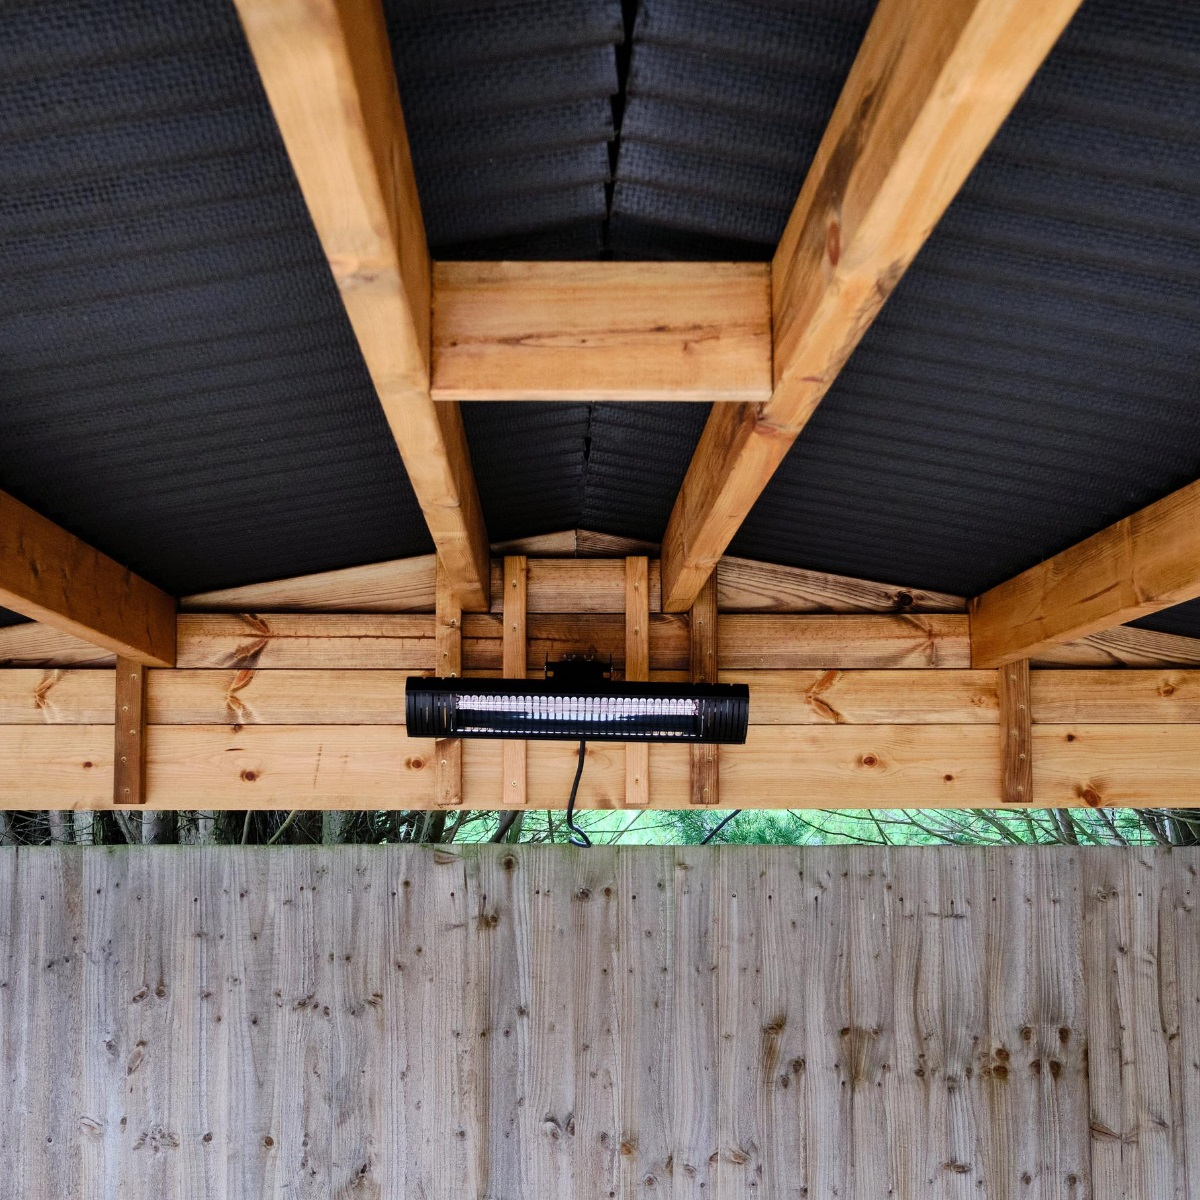 The underside of the apex roof of a wooden gazebo with the beams, composite roof panels and a rectangular electric heater